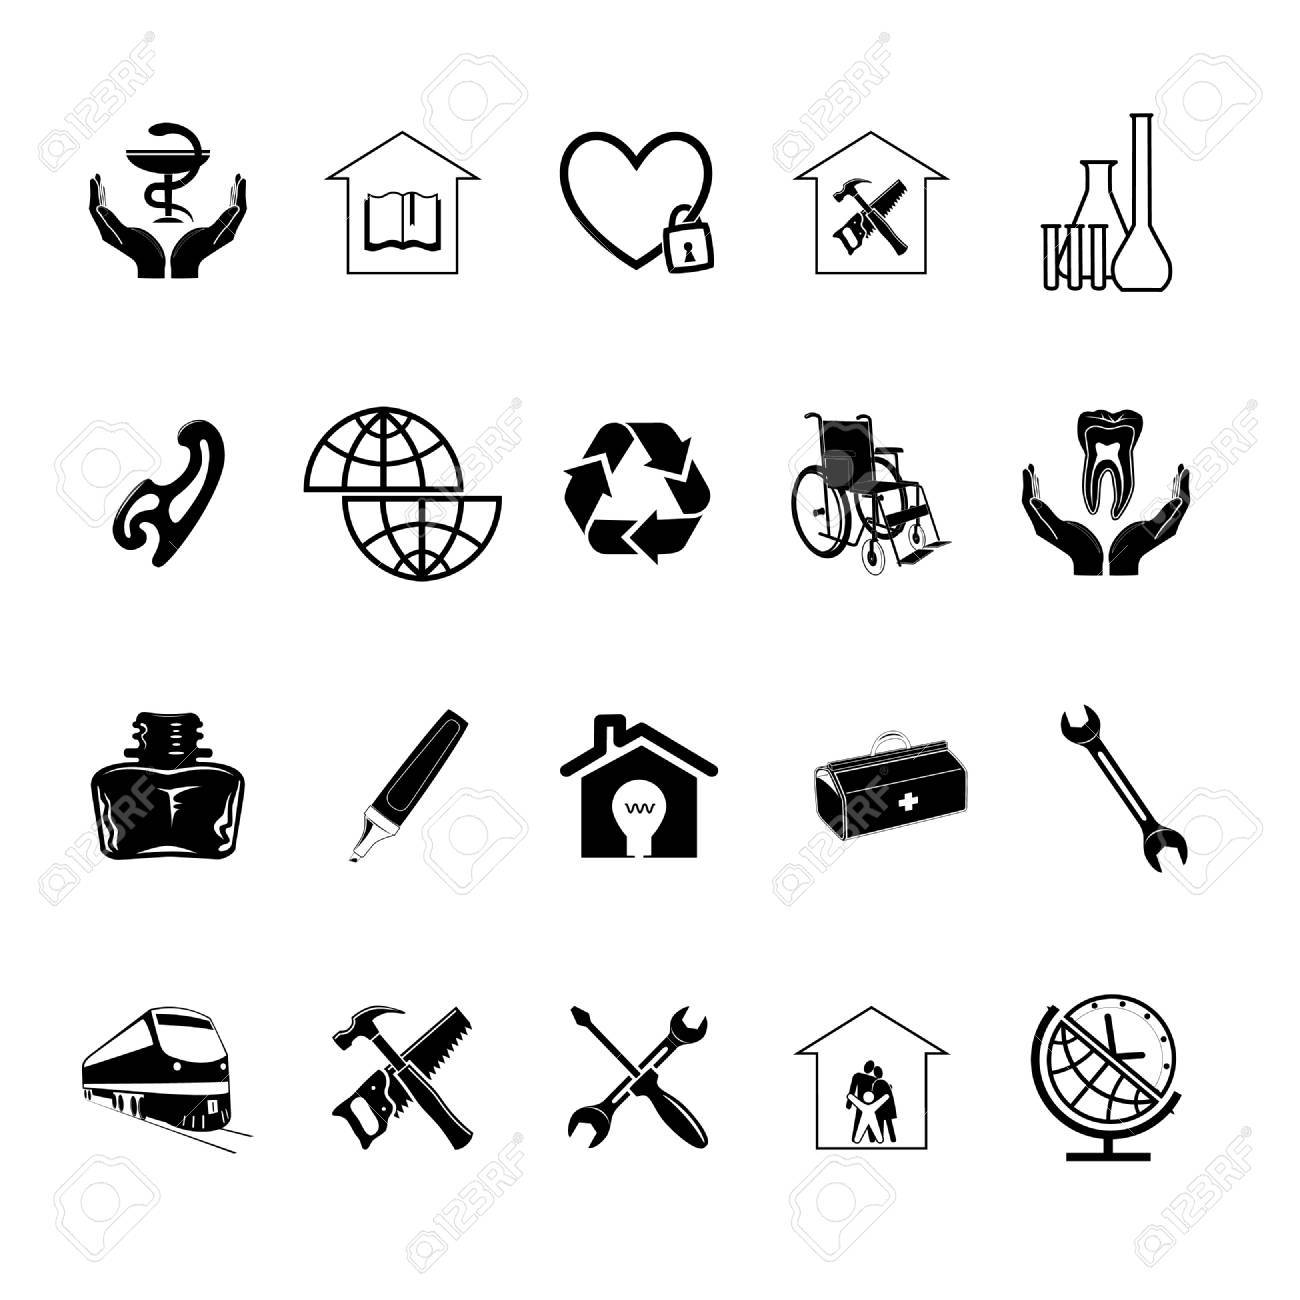 Vector set of icons Stock Photo - 8456696